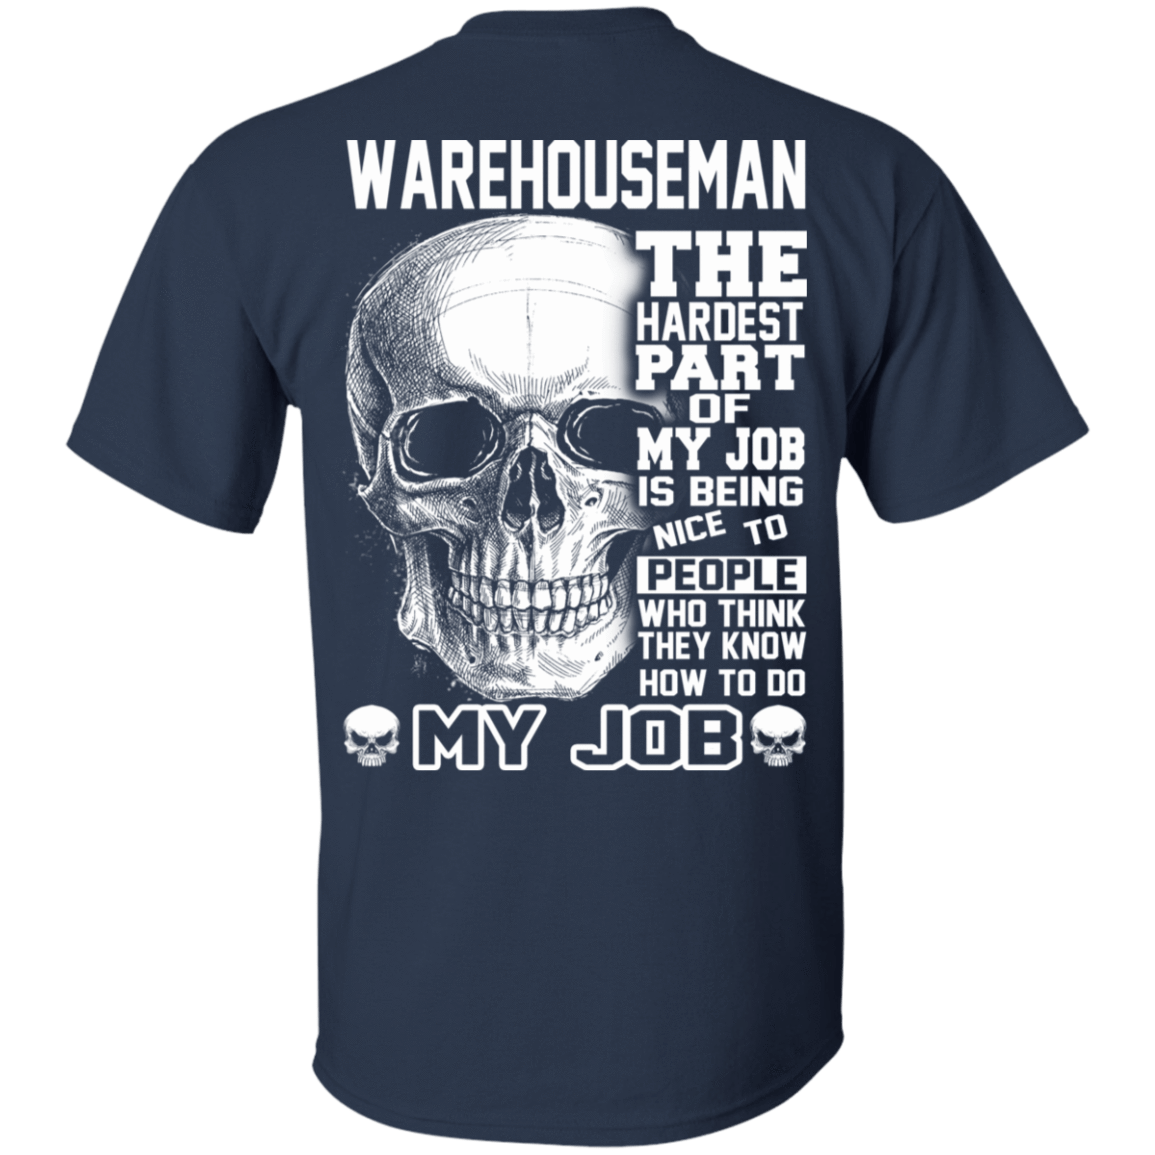 Warehouseman The Hardest Part Of My Job 22-111-71609195-250 - Tee Ript